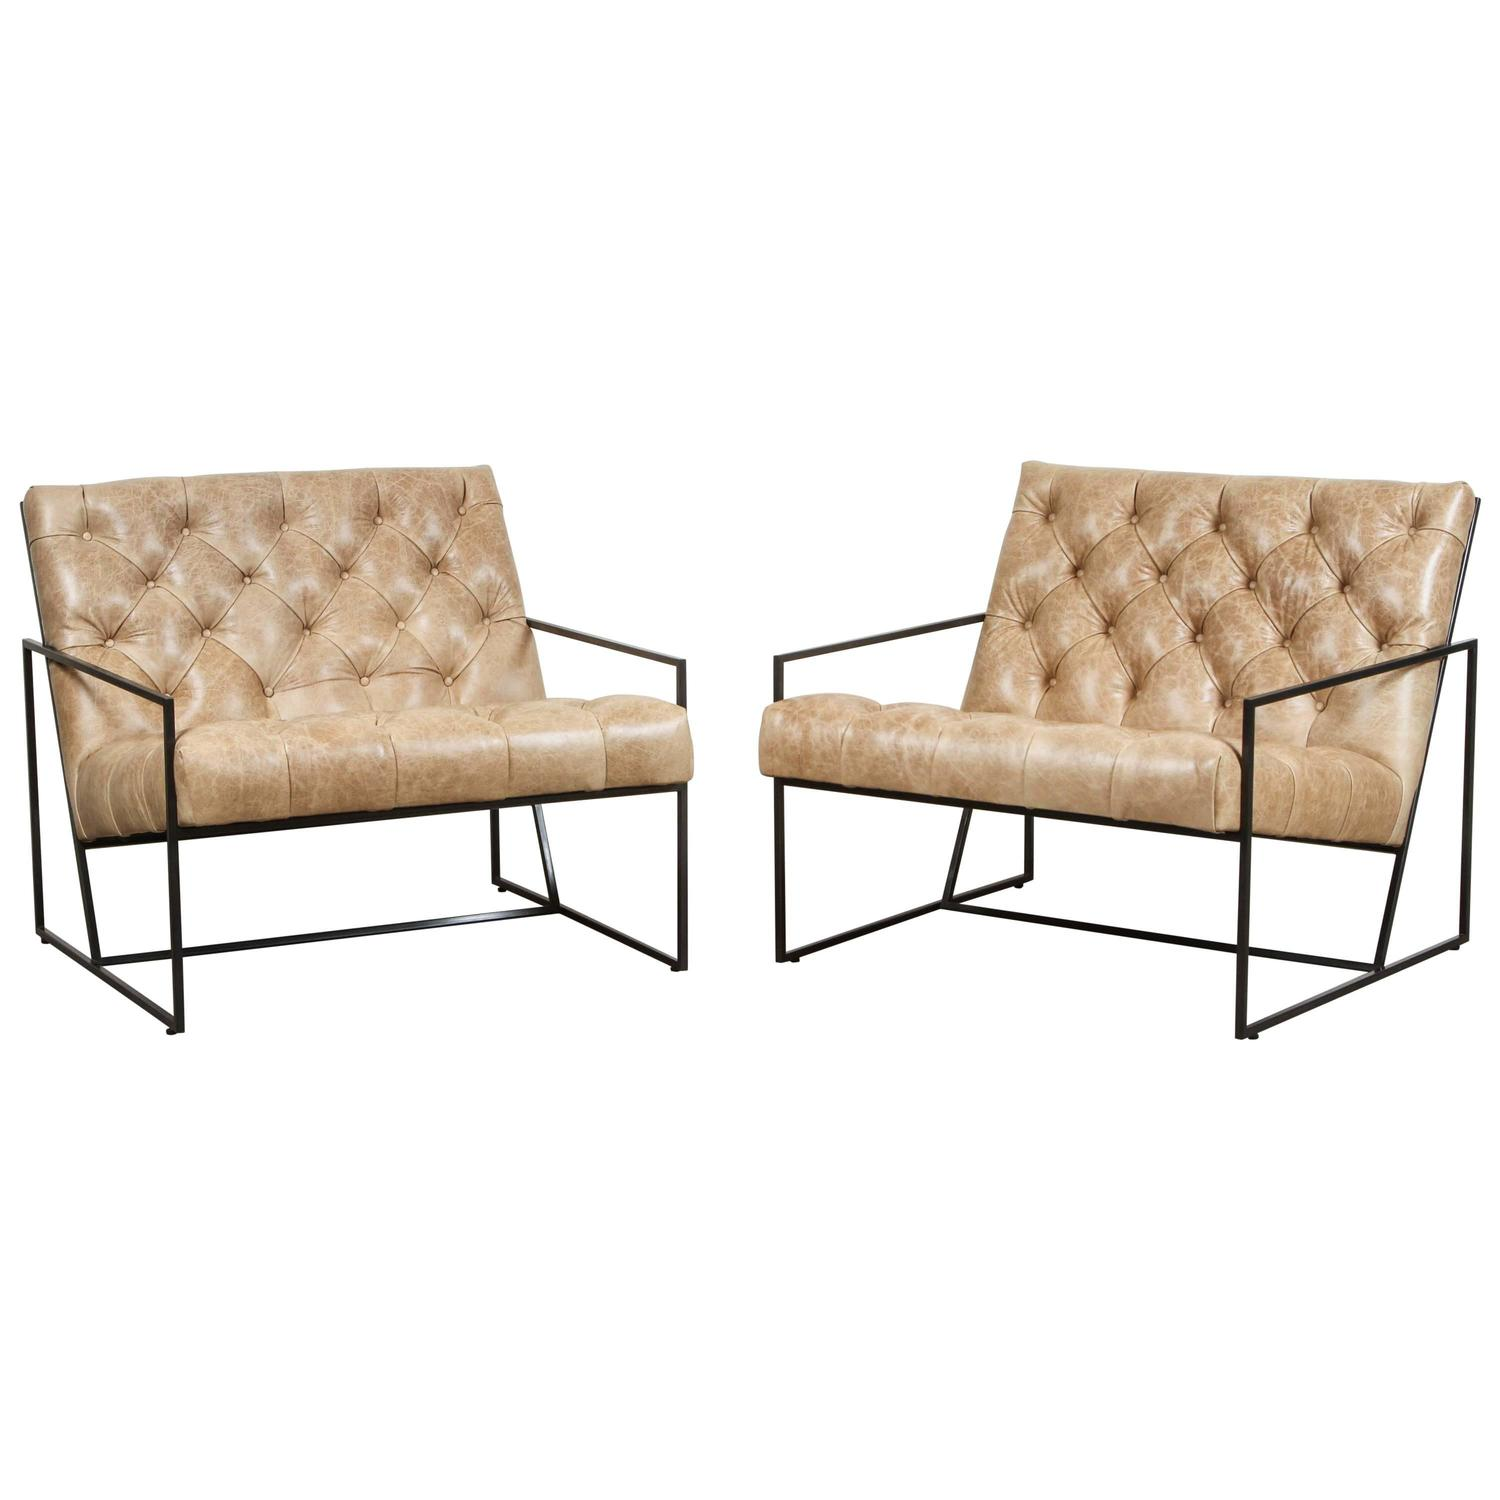 Beautiful Pair Of Tufted Thin Frame Lounge Chair By Lawson Fenning For Sale At 1stdibs